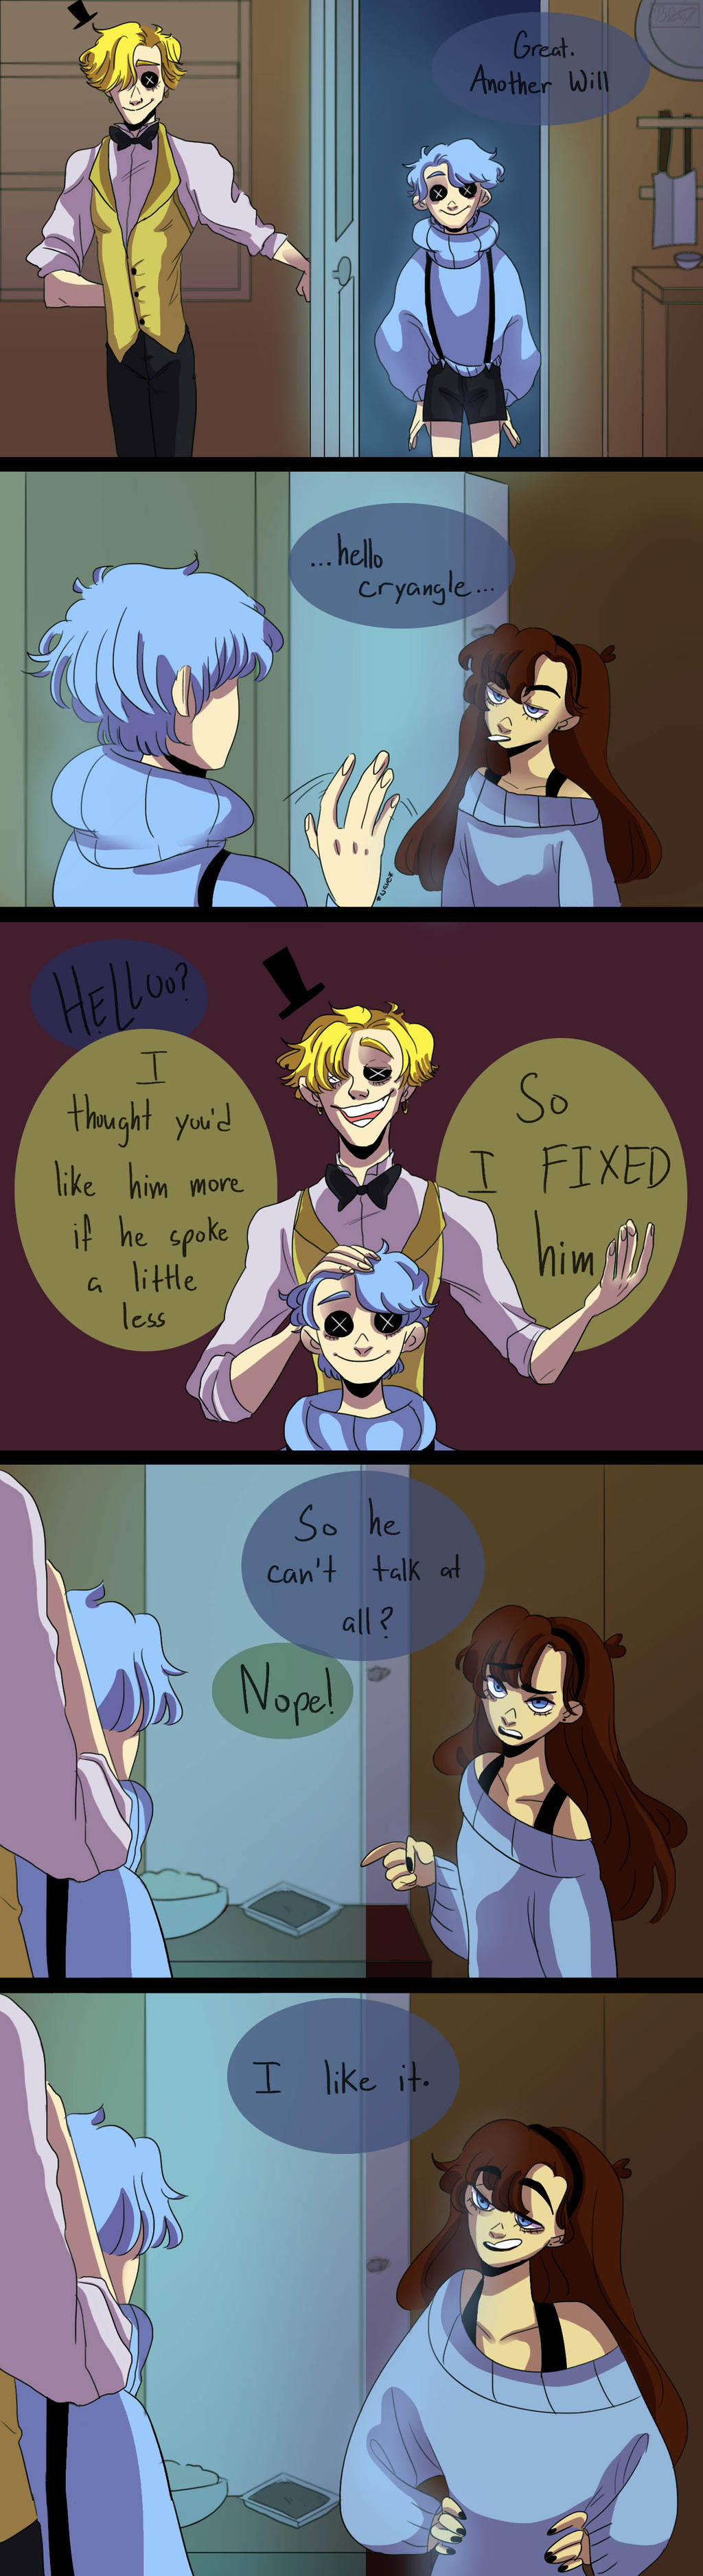 You Re Friend Coraline And Gf Crossover By Muramasa Nii On Deviantart